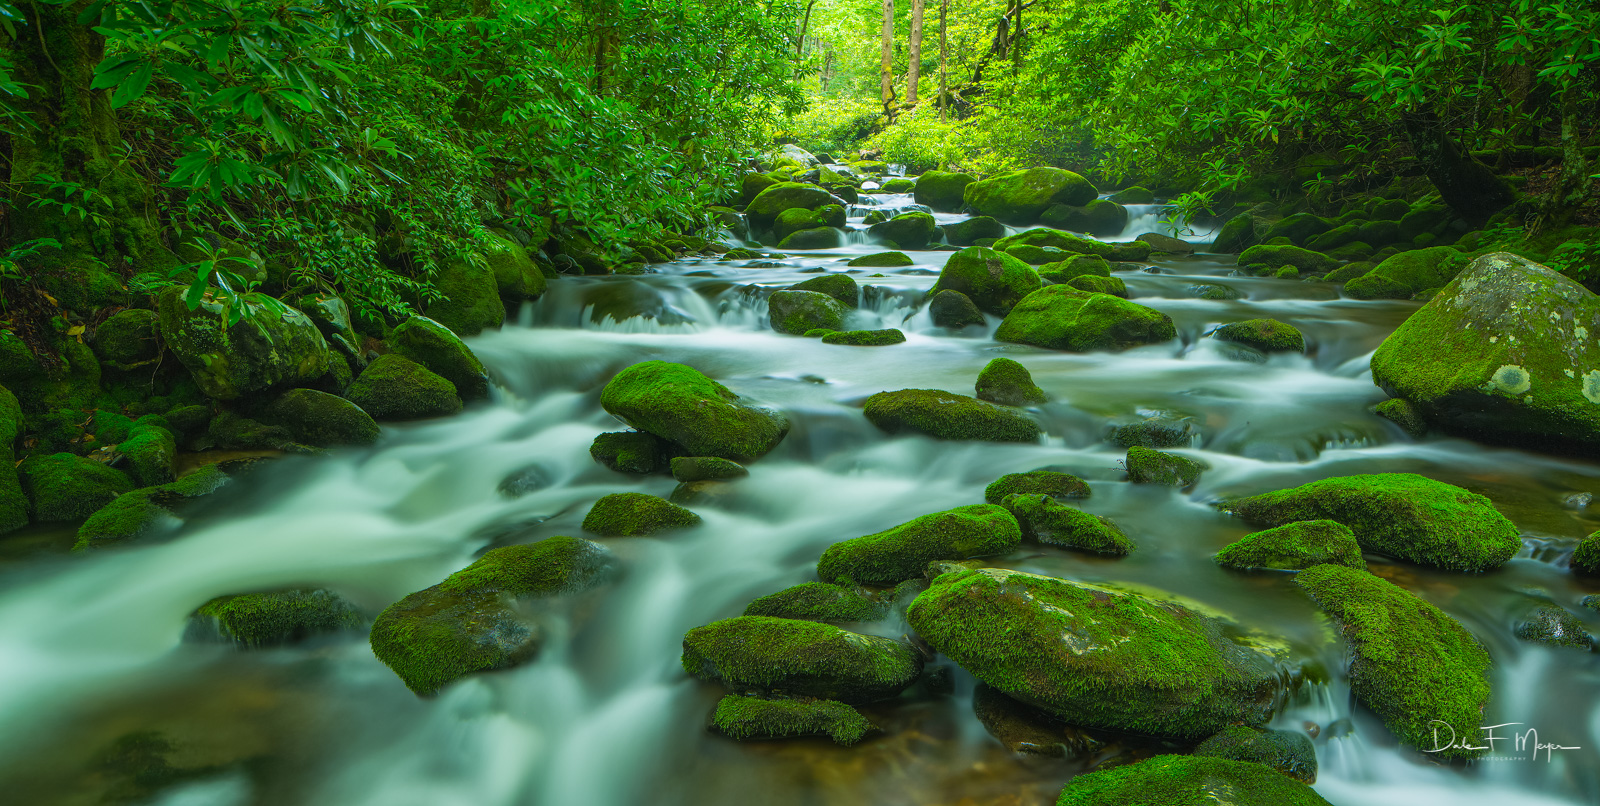 There are places on the Roaring Fork that are just simply beautiful beyond even what this photo can totally reveal. The mosses...